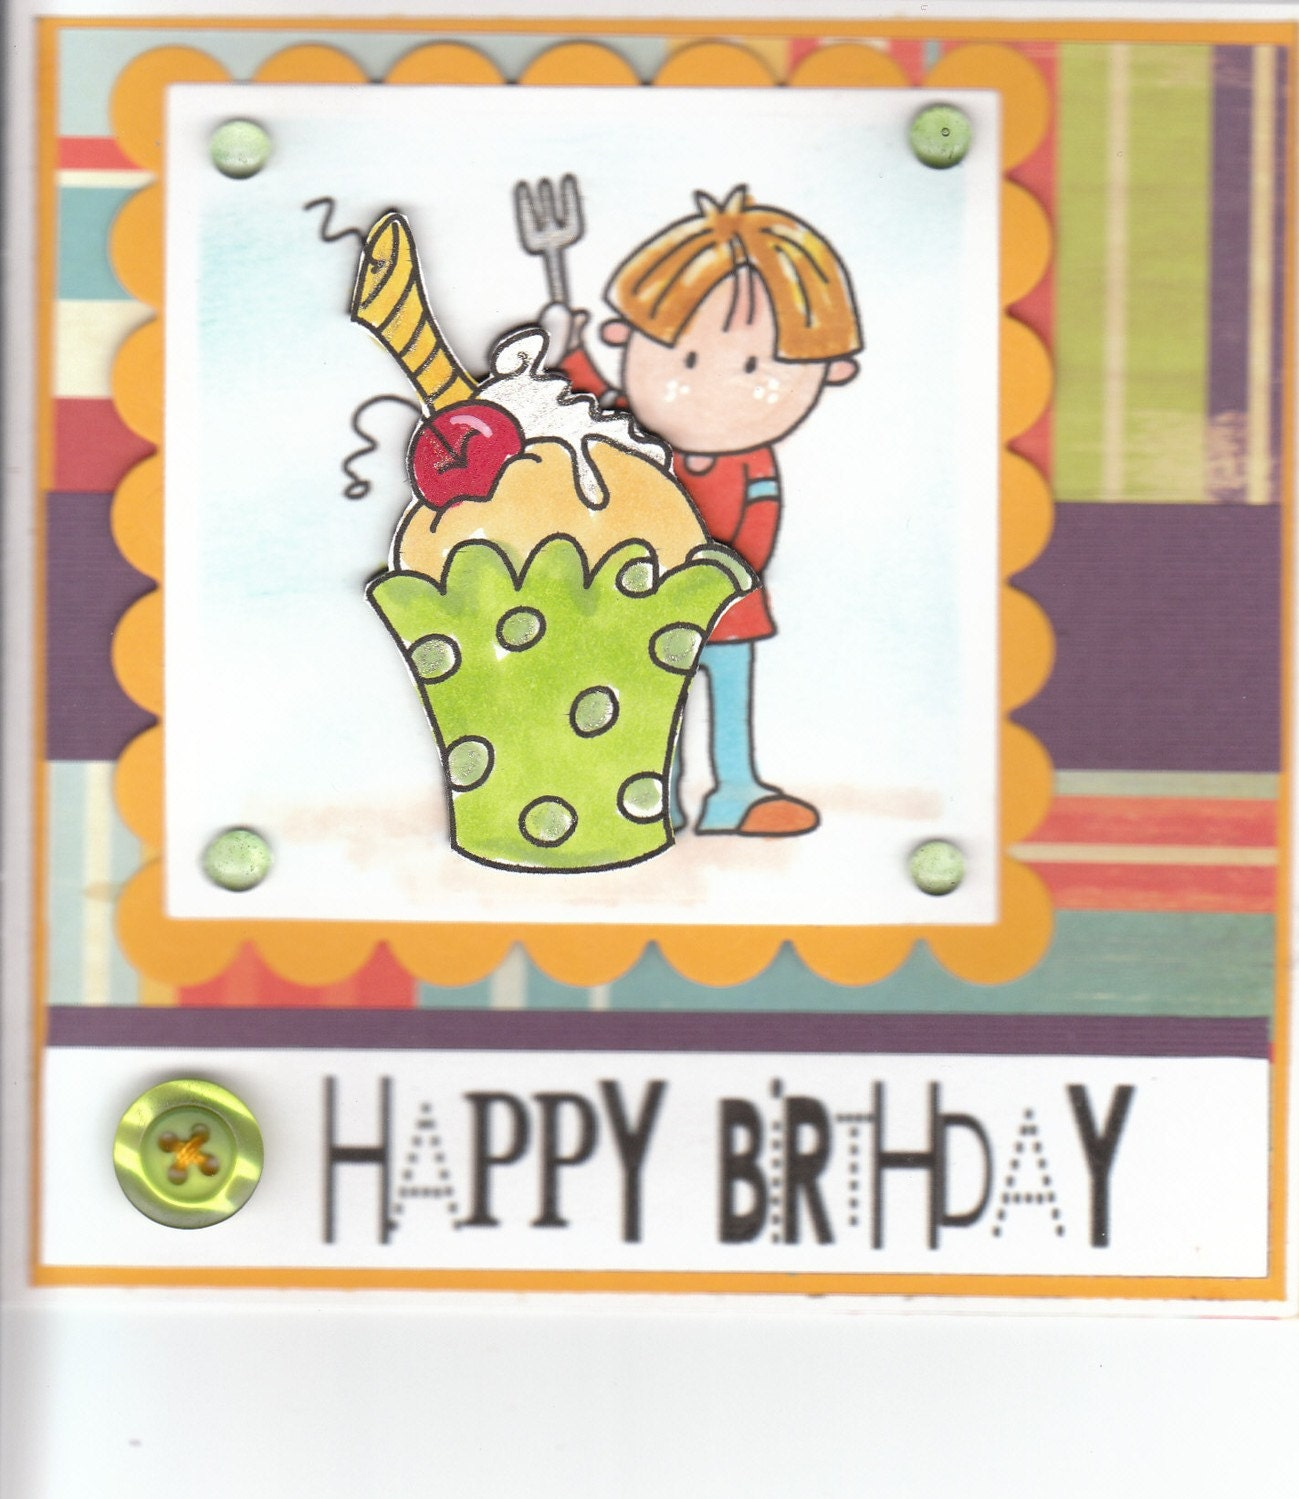 HAPPY BIRTHDAY CUPCAKE BOY HANDMADE CARD